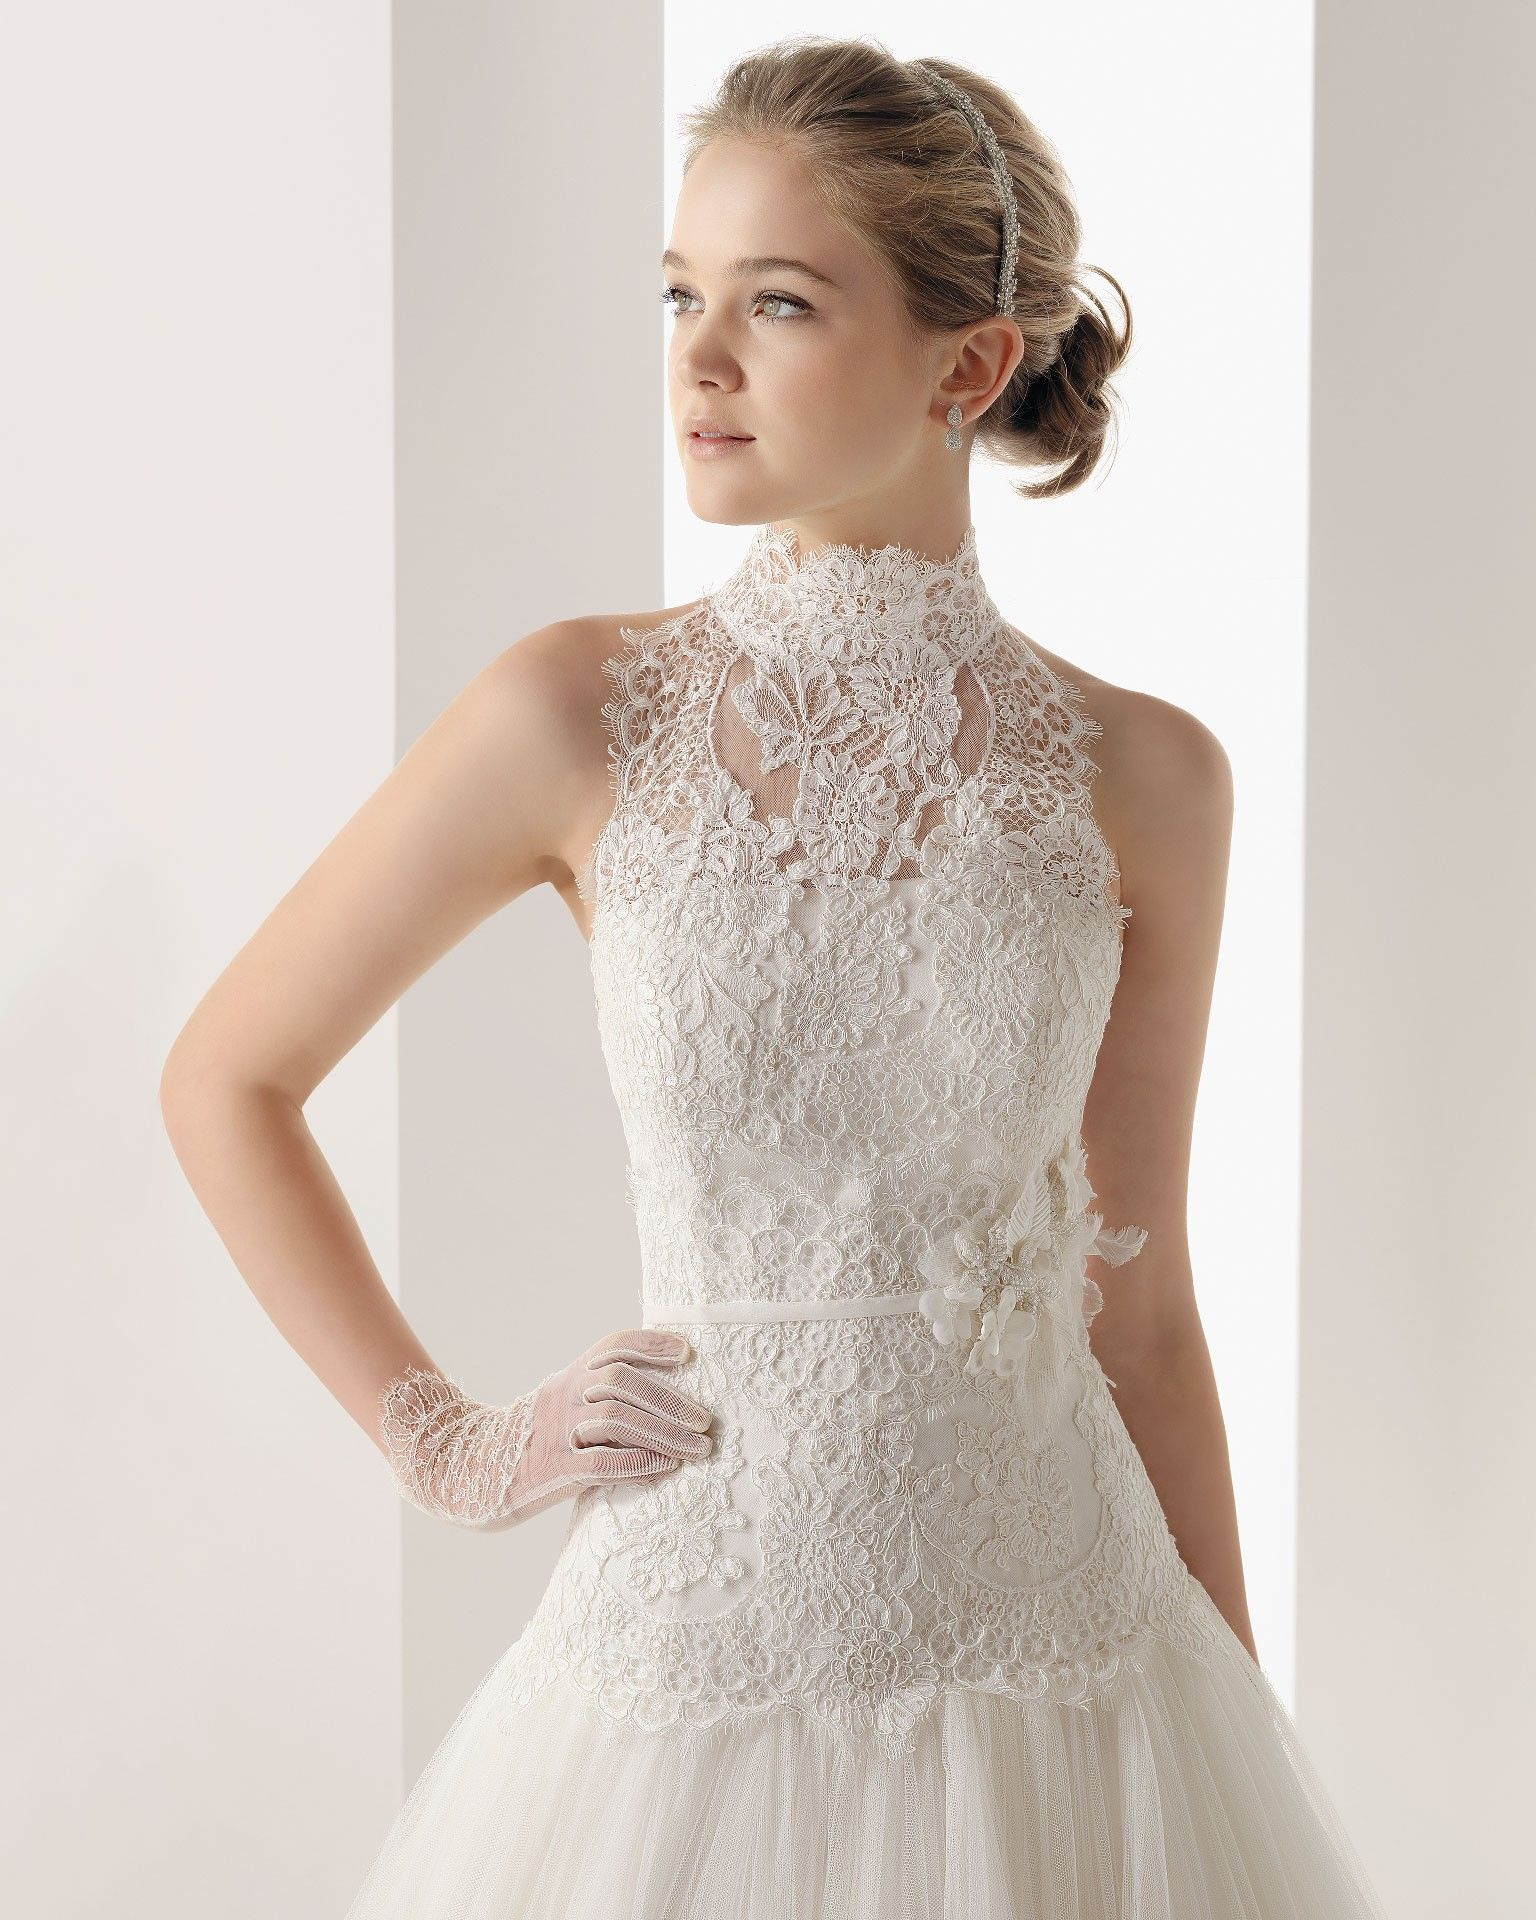 Wedding lace wro | Tulle High Neck Chapel Train A Line Wedding Dress ...